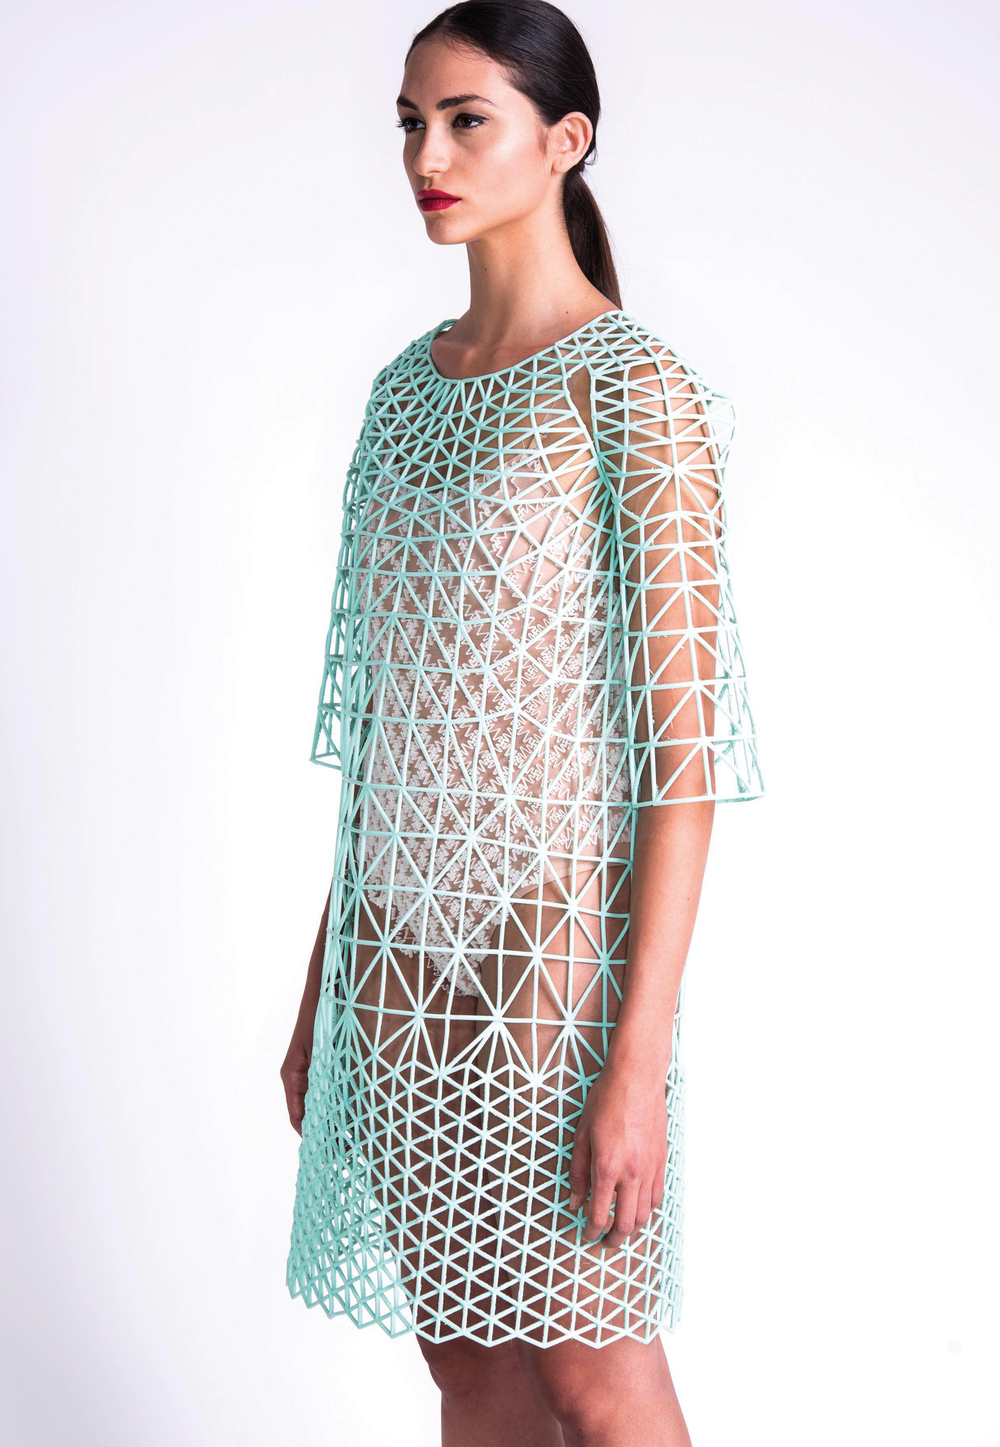 3D printed clothing collection by  Danit Peleg